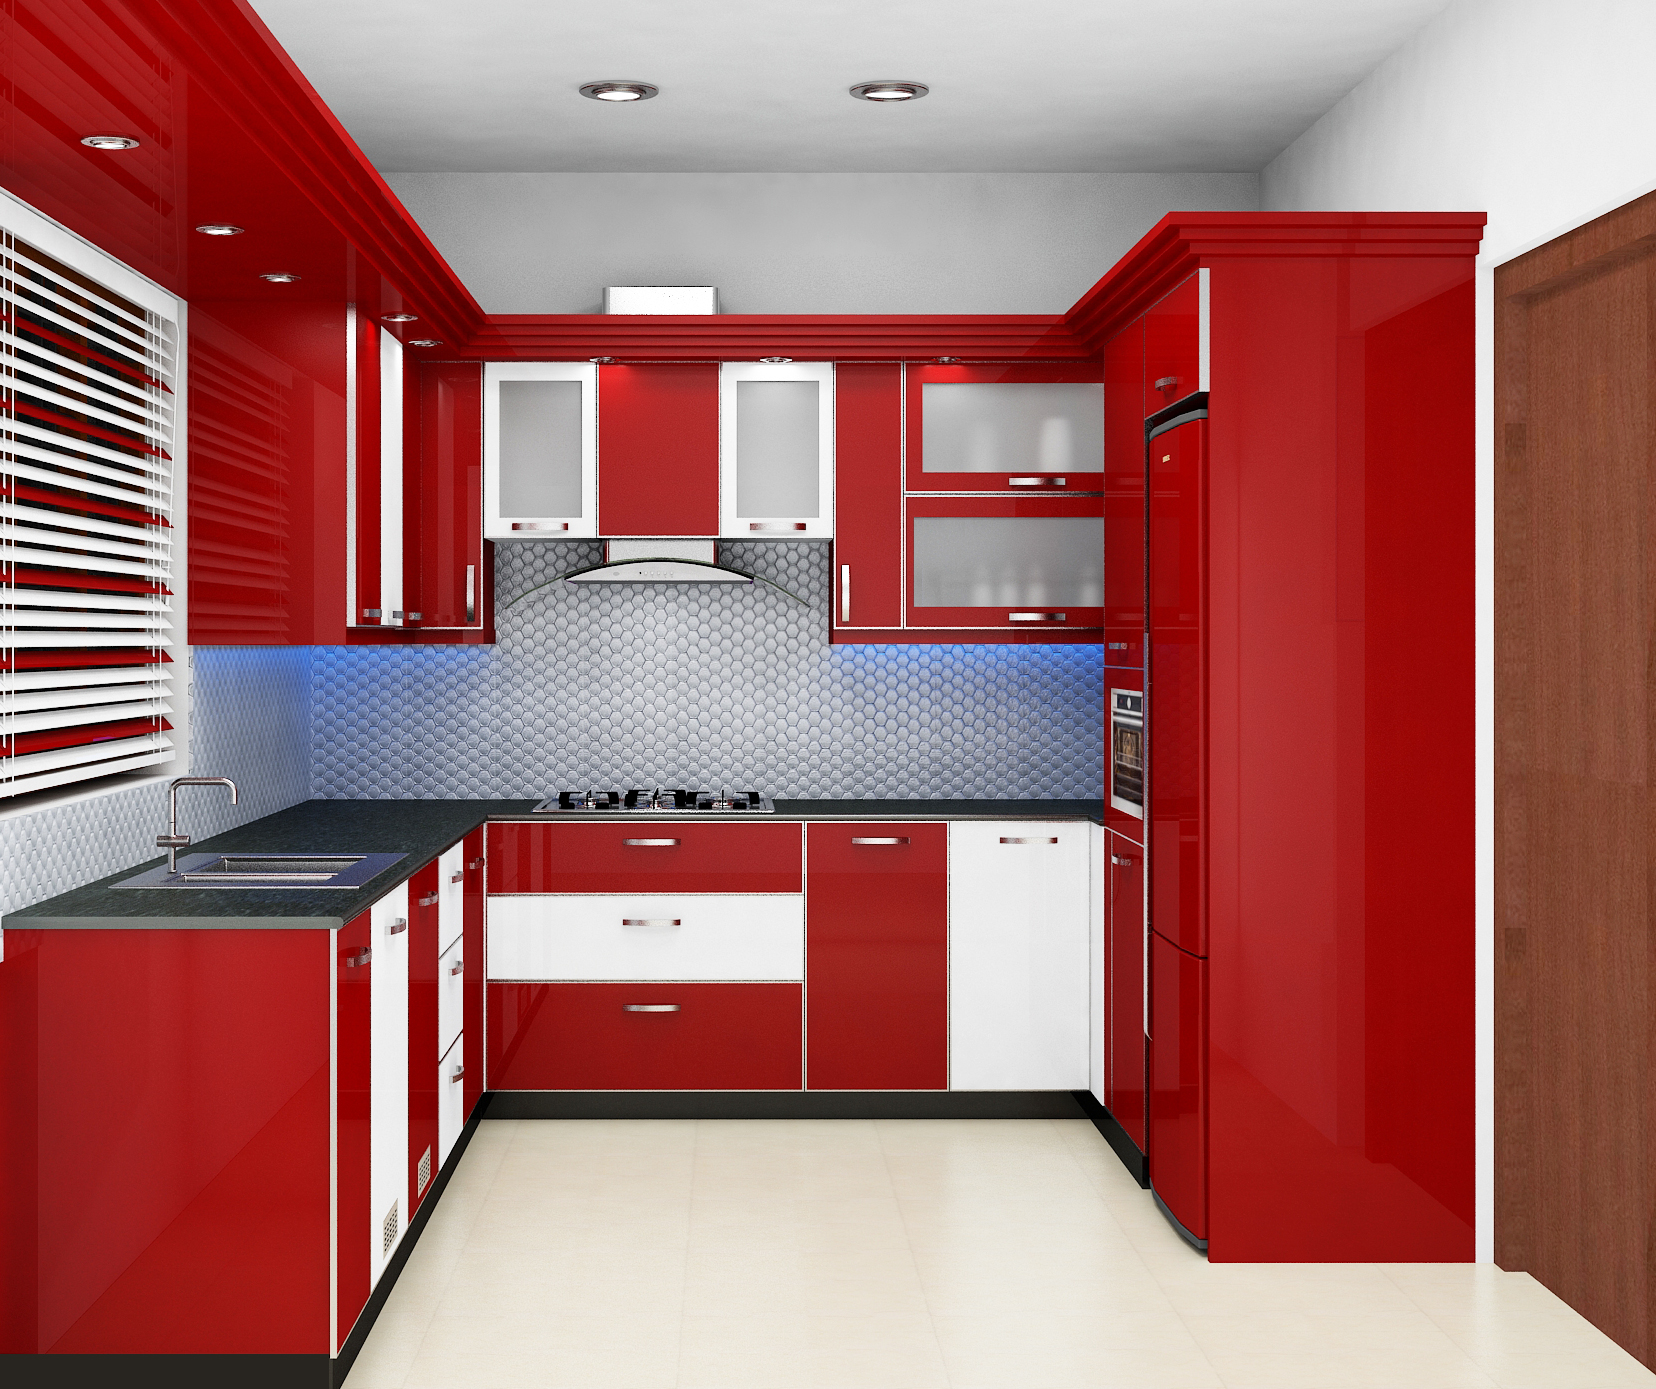 Design House Interiors Exemplary And Amazing Modular Kitchen Home Interior Design